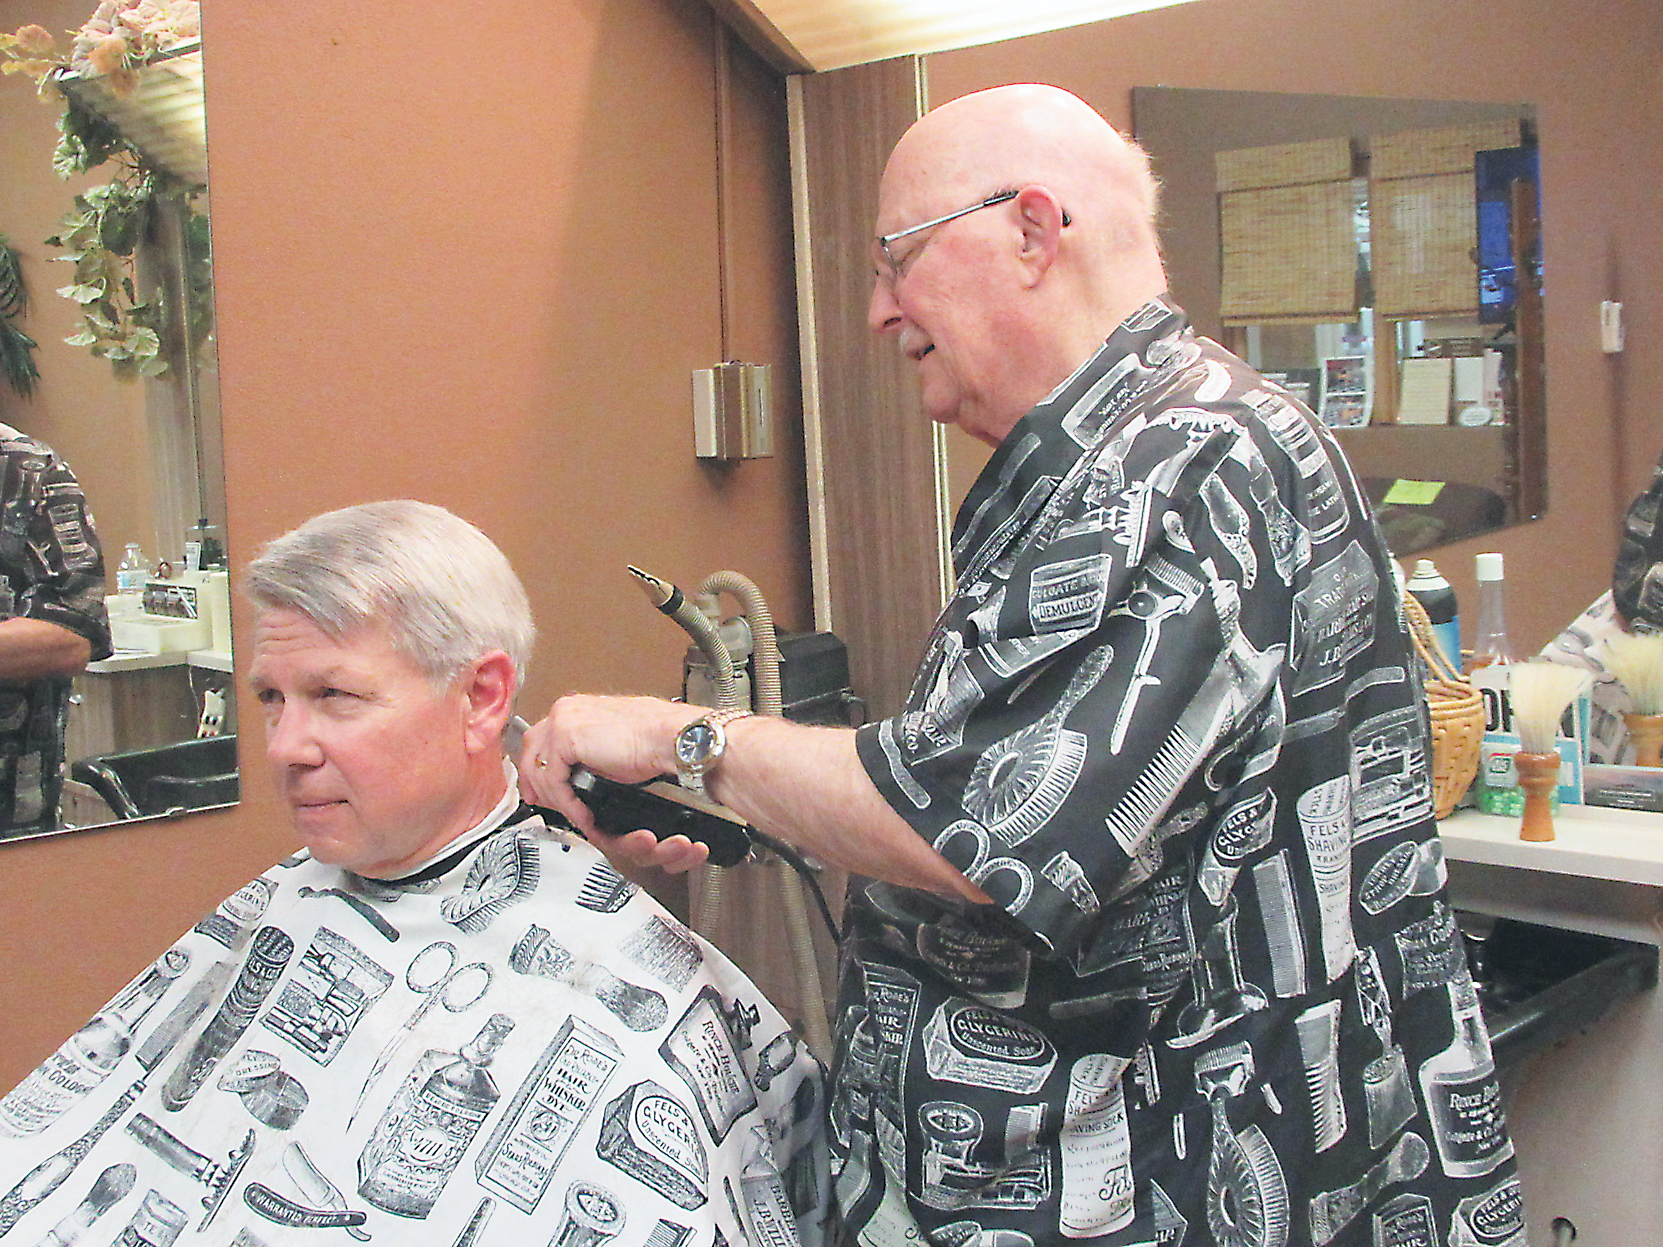 One chair, one barber | News, Sports, Jobs - Marshall Independent